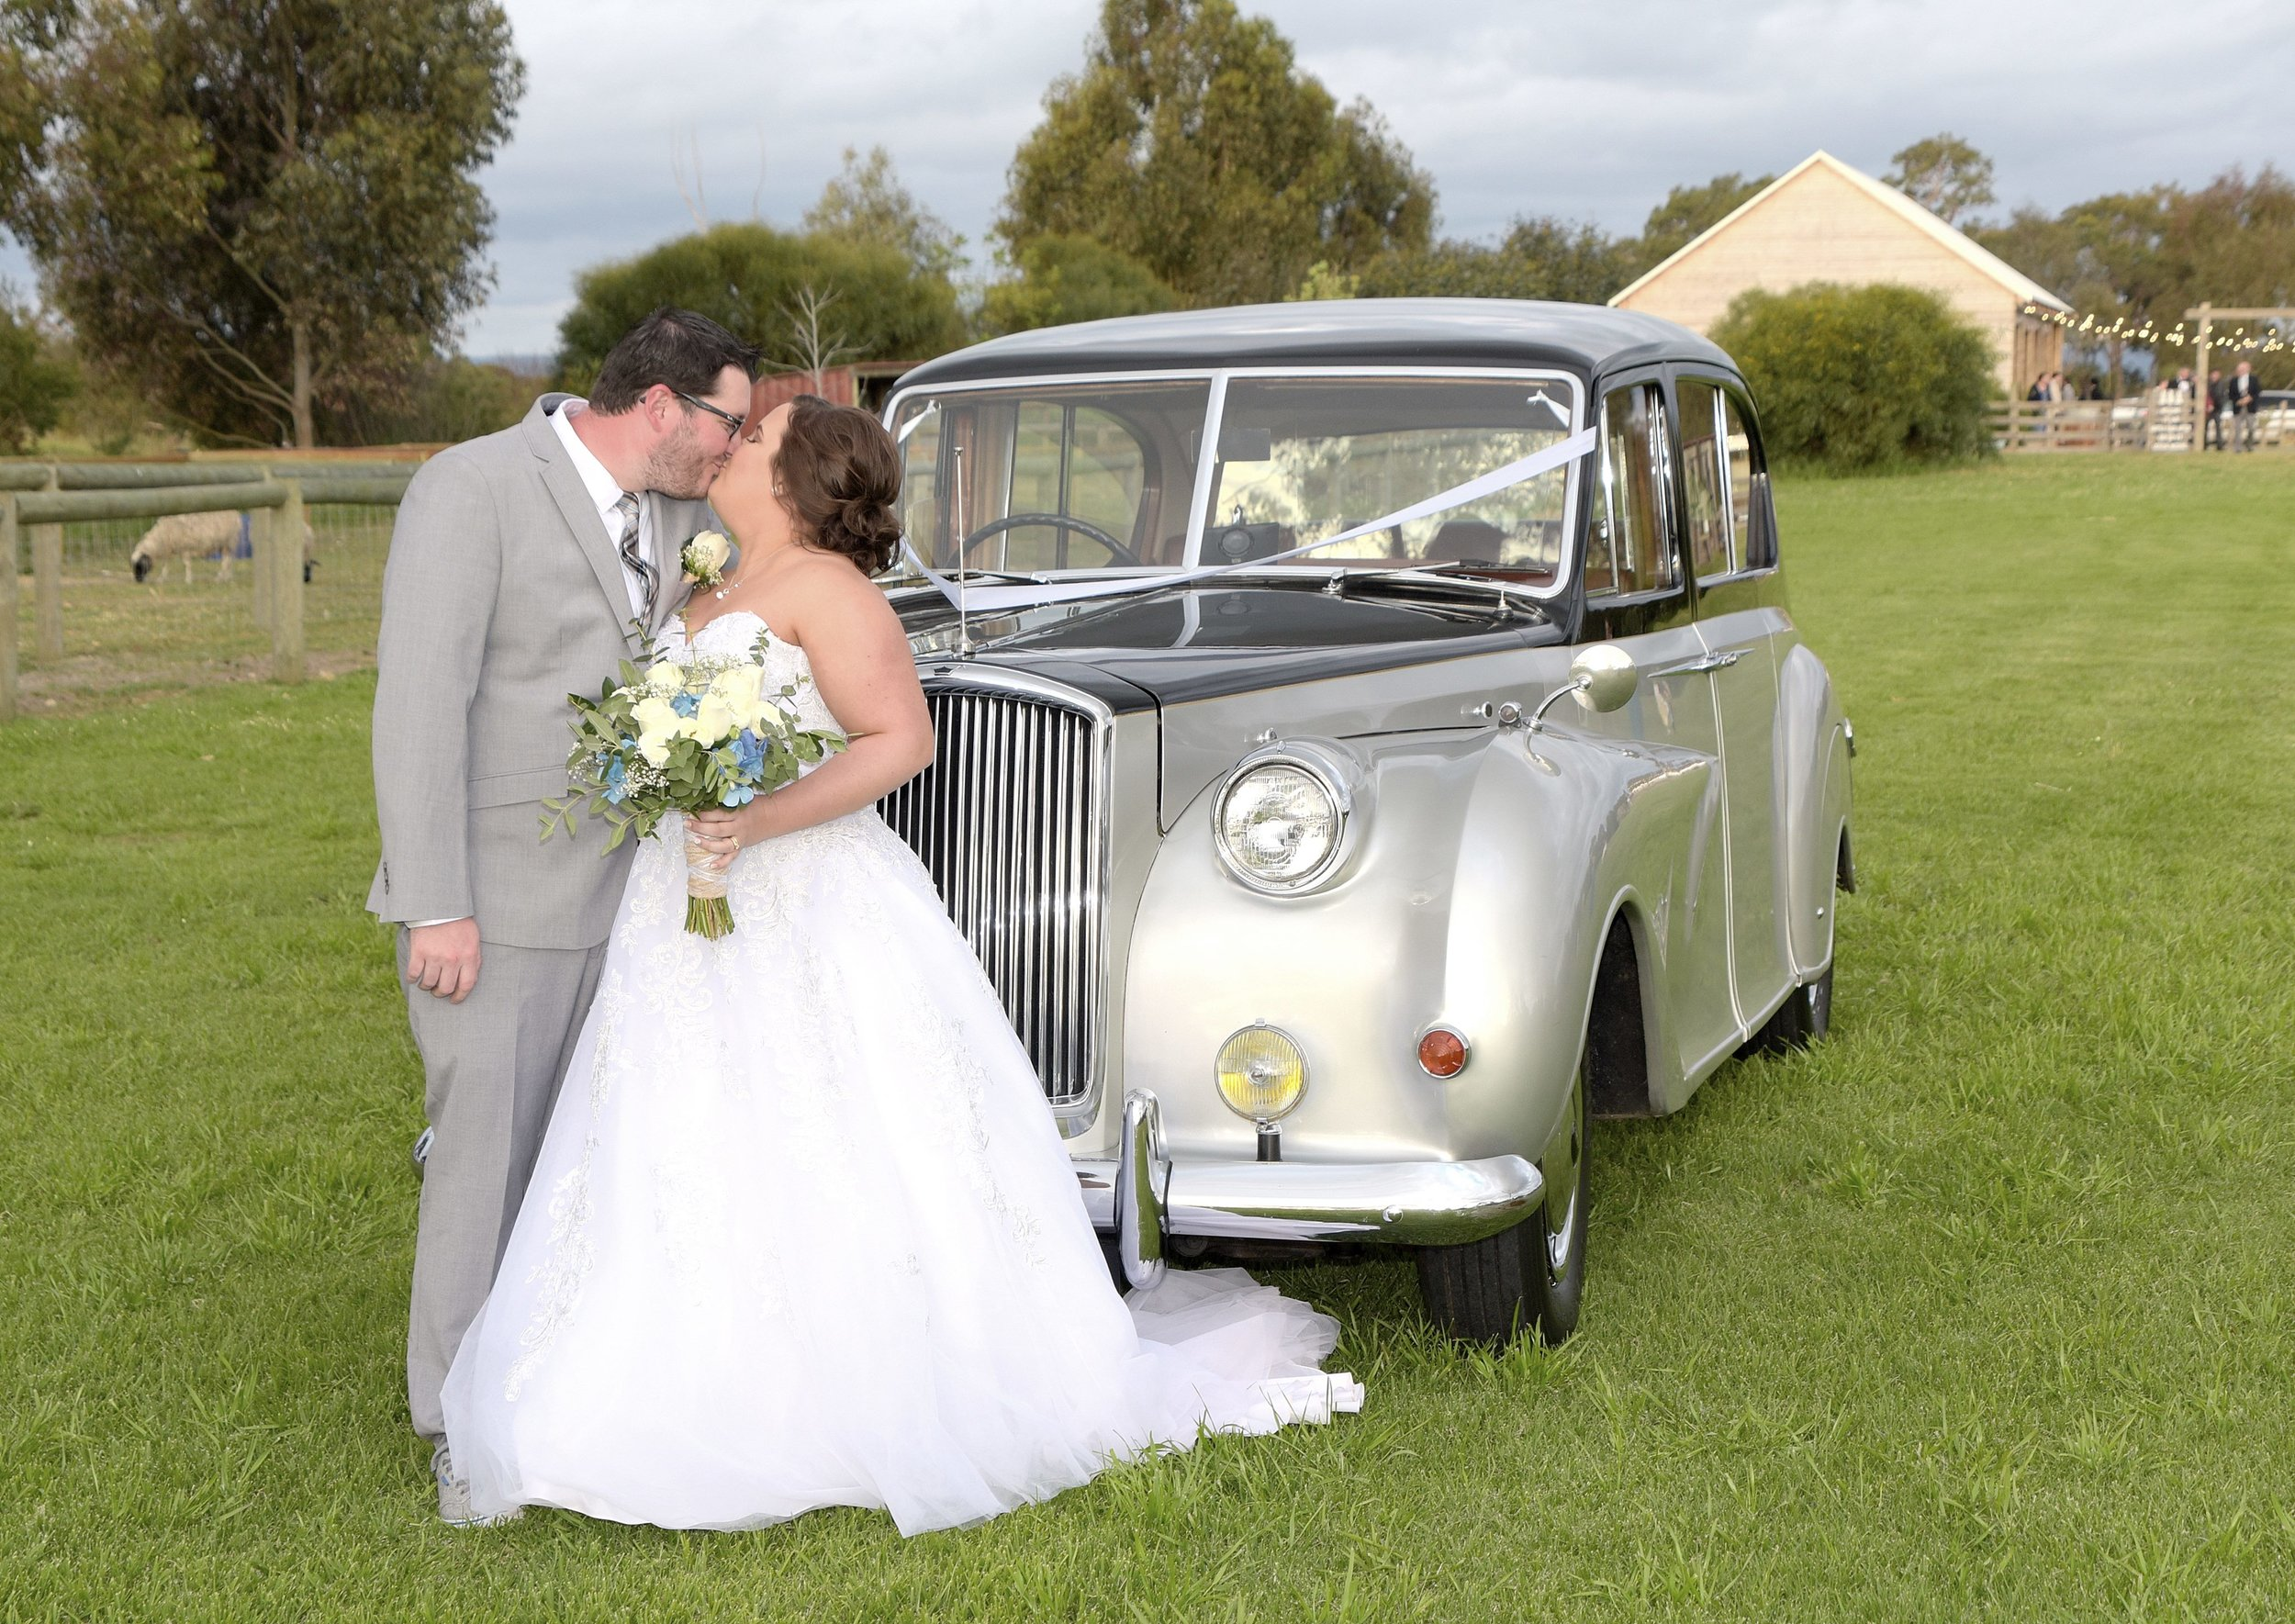 Amber & Aaron Baldivis Farm Stay bride and groom kiss in front of car again.jpeg